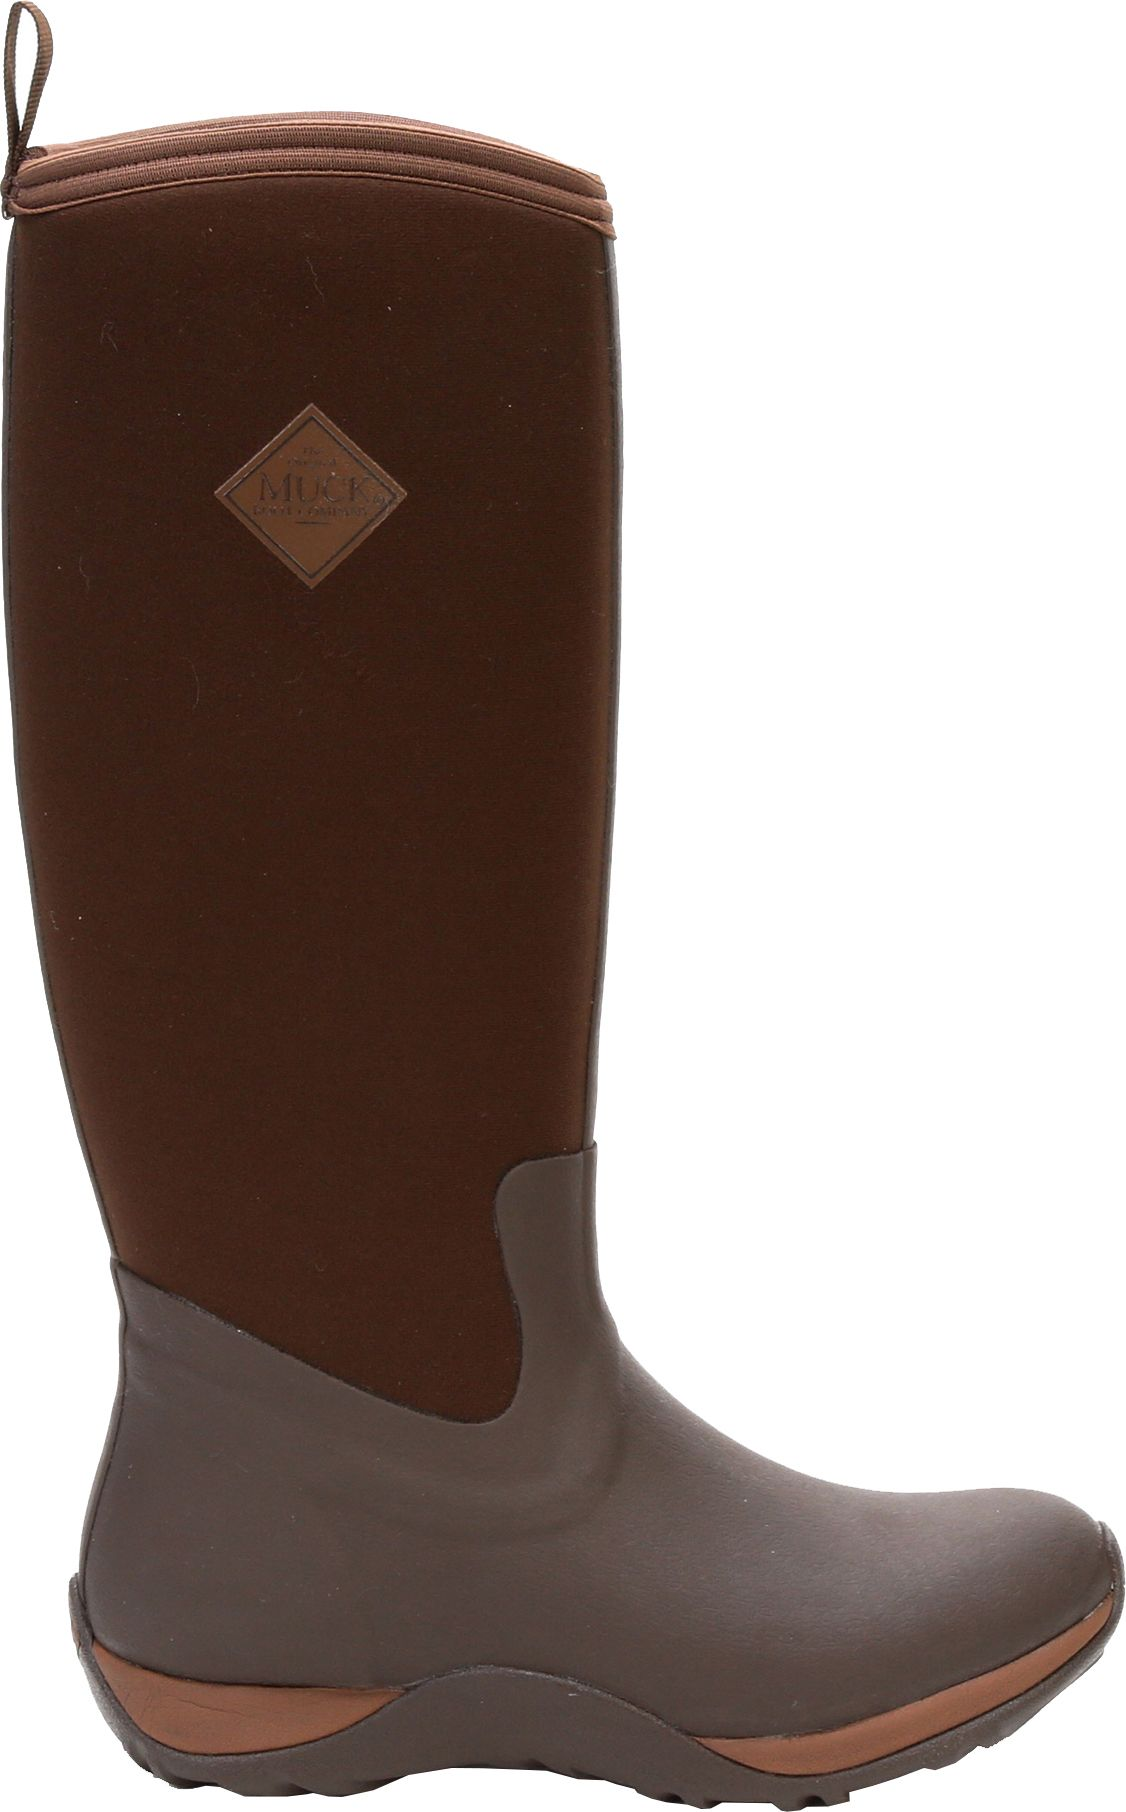 Muck Boots For Men Clearance - Cr Boot